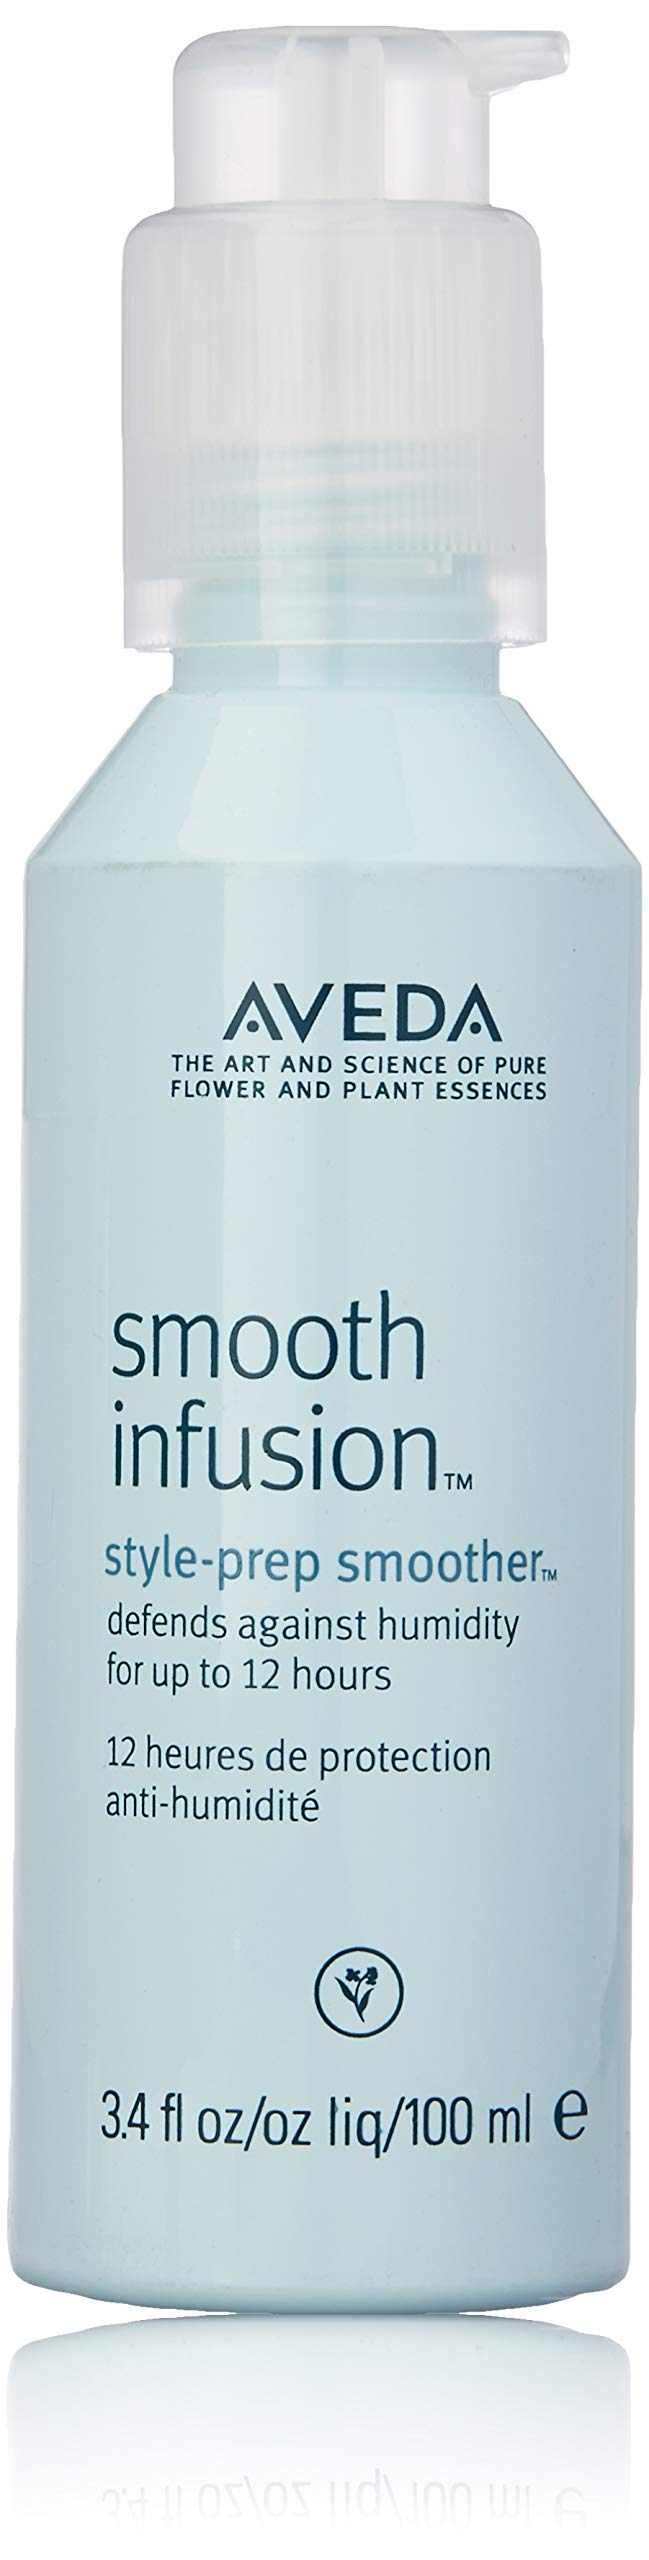 Aveda Smooth Infusion Style-Prep Smoother 3.4 oz by AVEDA